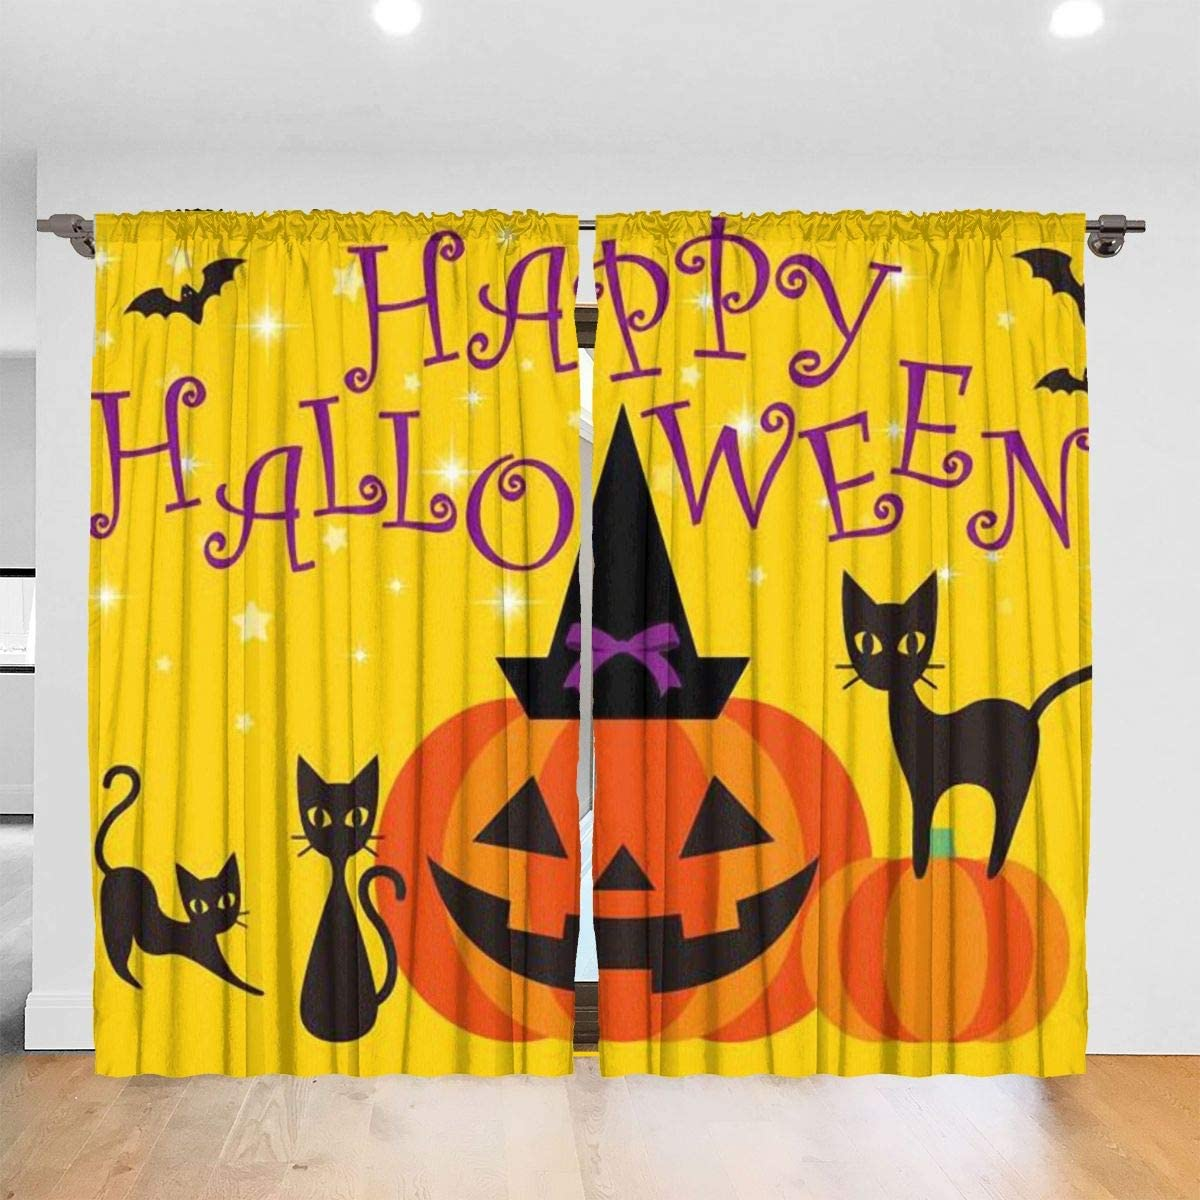 Xianlixiu Window Curtain Drapes Panels Happy Halloween Thermal Insulated Blackout Curtains 2 Panels for Living Room Bedroom Dining Room 52 X 84 Inch